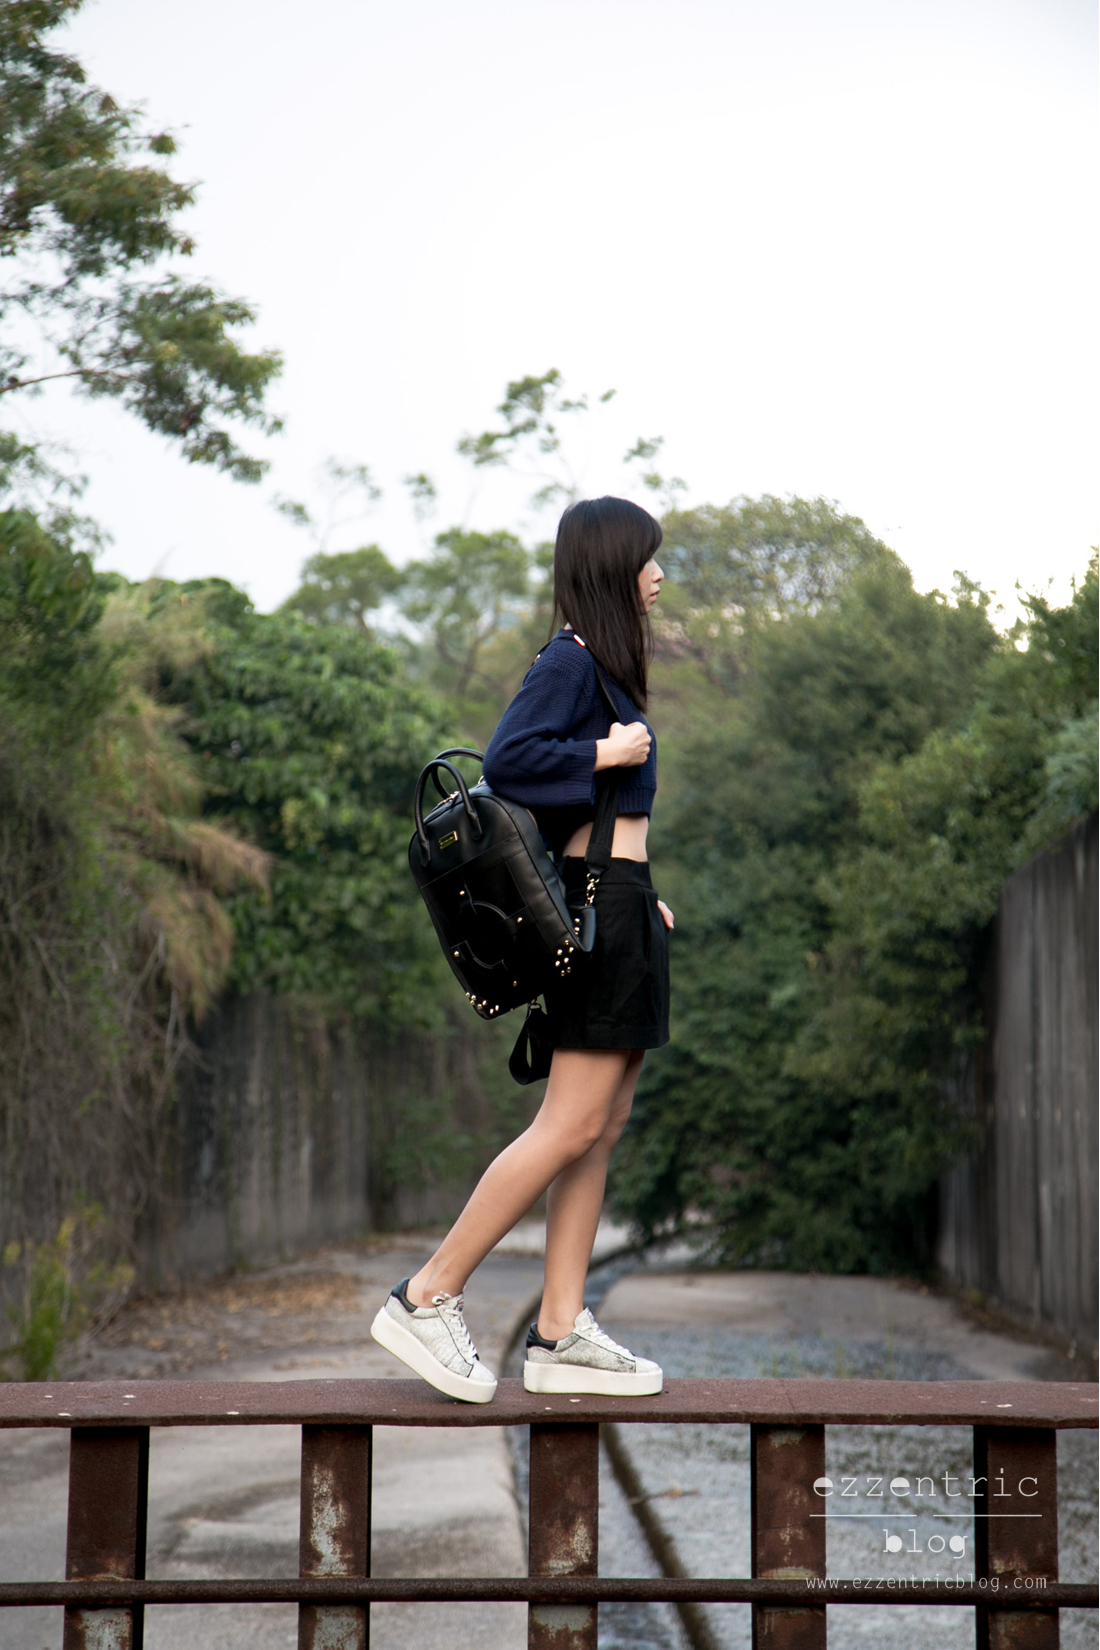 Armani Watch , Ash Platform Sneakers , Backpack Outfit 04